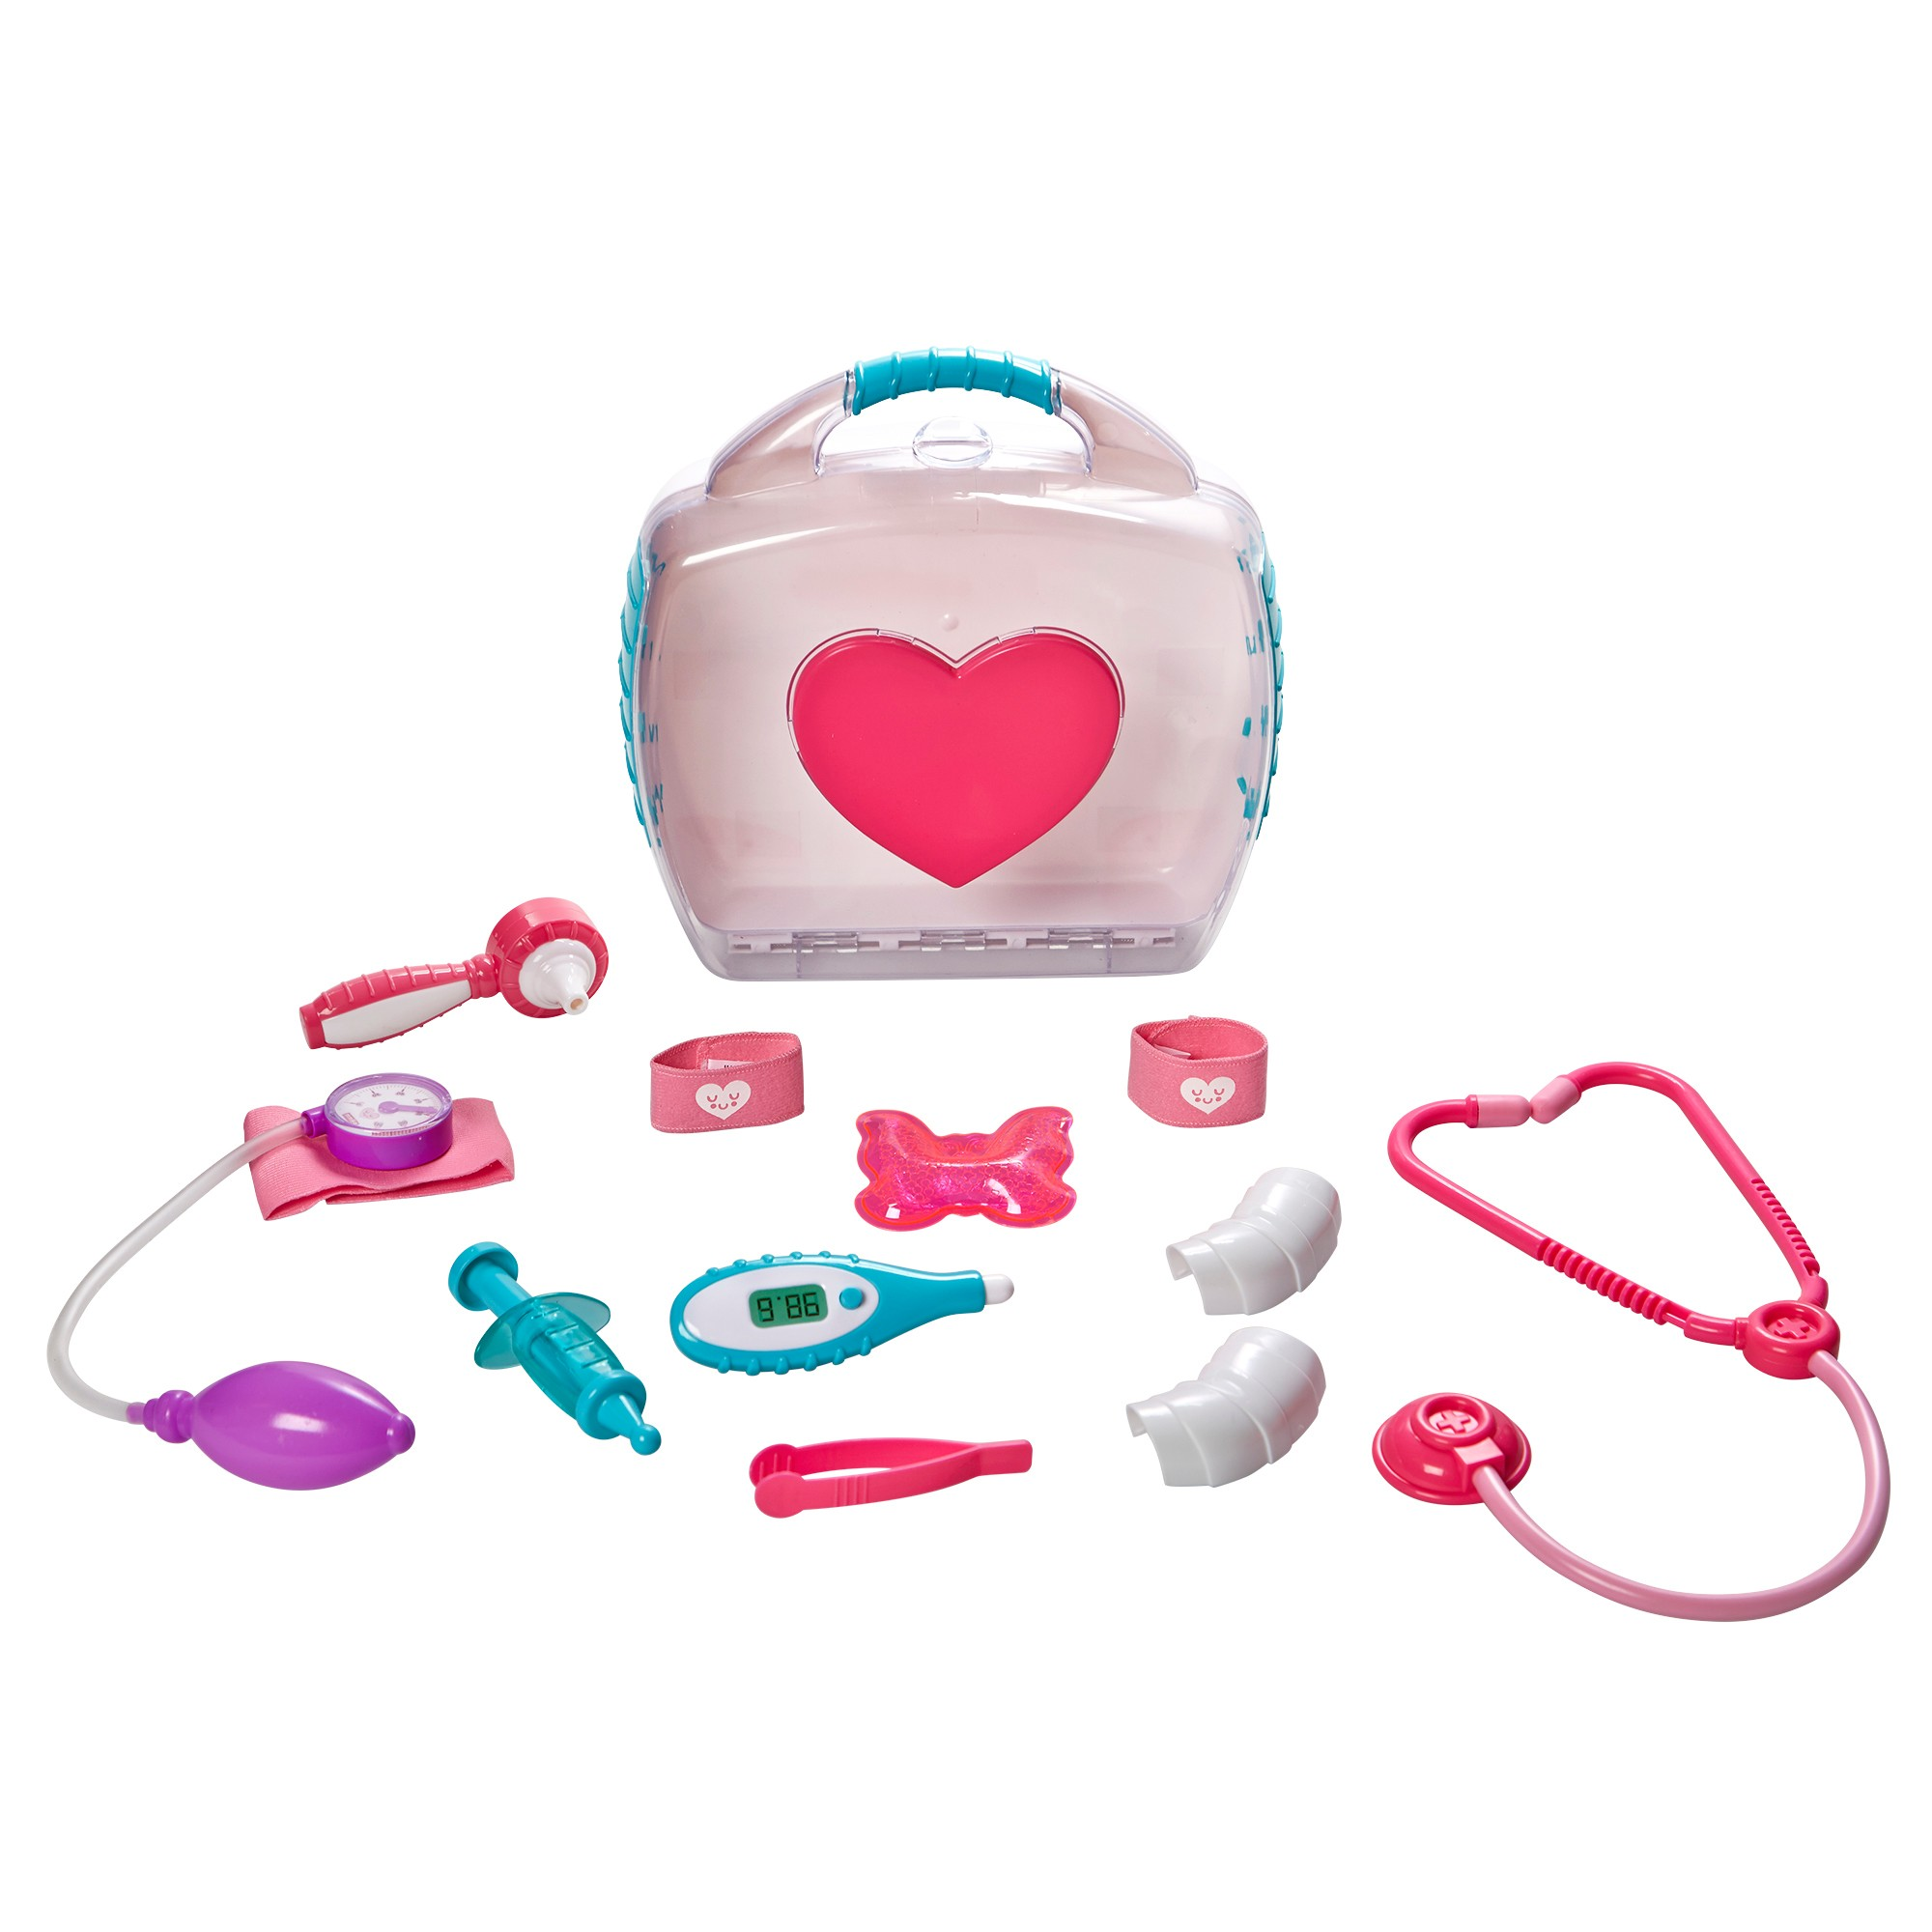 Perfectly Cute Baby Doll Take Care Doctor Kit.